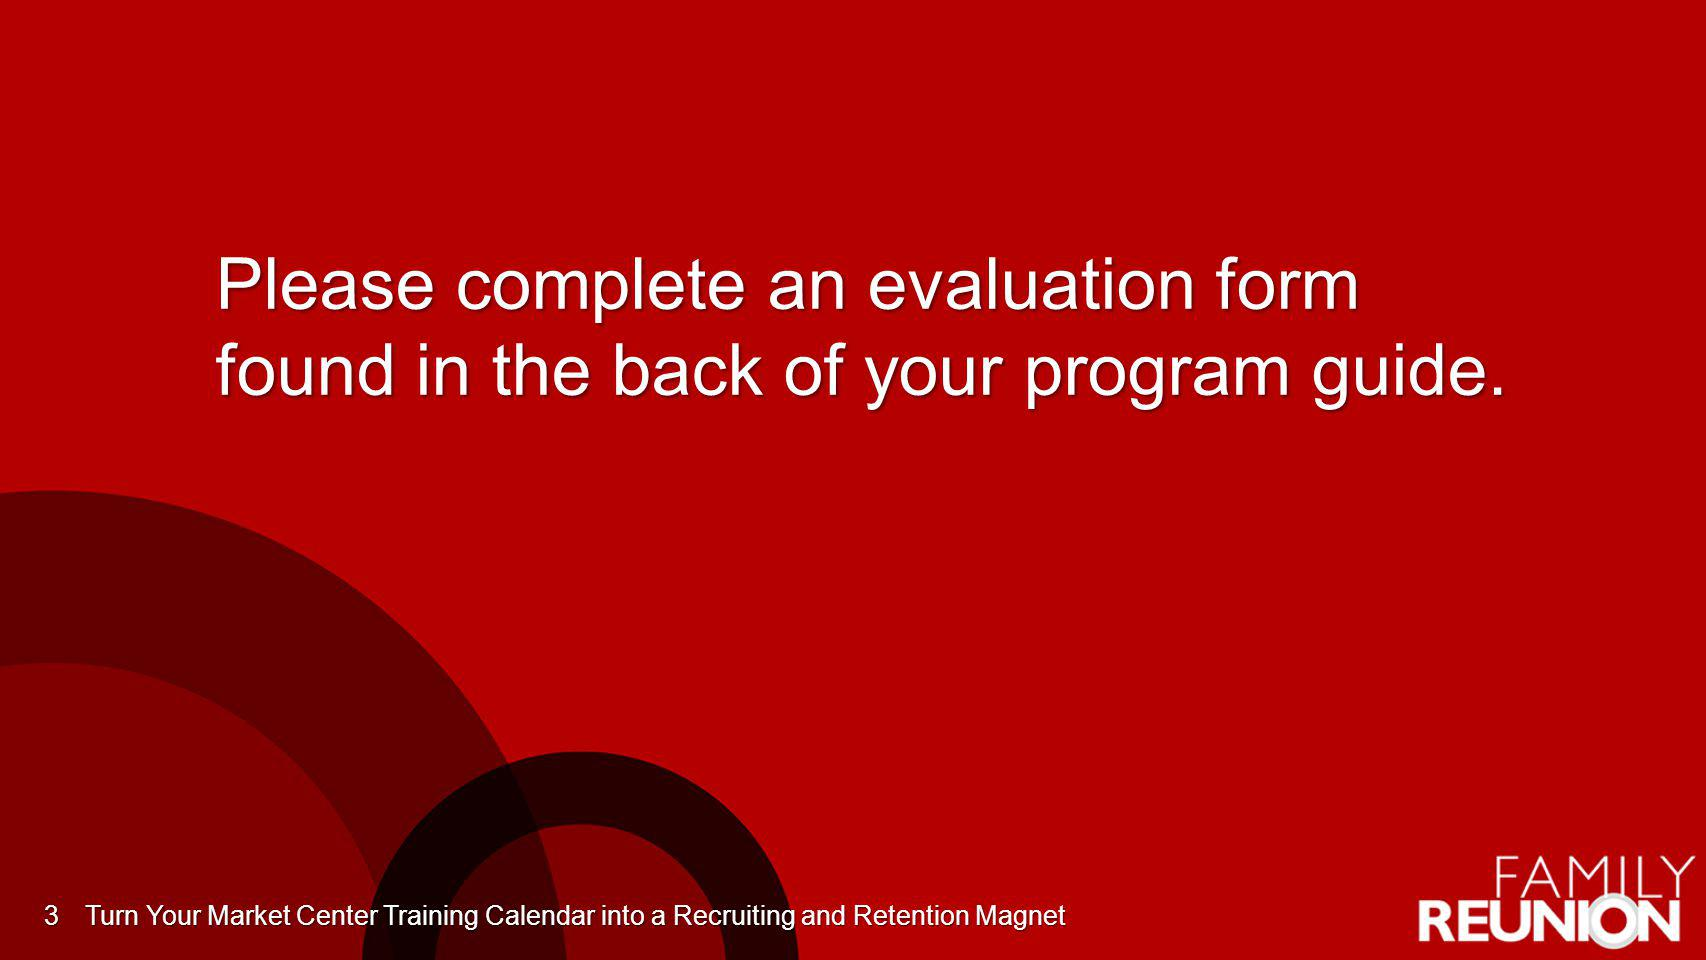 A World-Class Training Calendar … Gives your associates the opportunity to experience careers worth having, businesses worth owning, and lives worth livingGives your associates the opportunity to experience careers worth having, businesses worth owning, and lives worth living Attracts the top people in your market with evidence of your success-based mindsetAttracts the top people in your market with evidence of your success-based mindset Turn Your Market Center Training Calendar into a Recruiting and Retention Magnet4